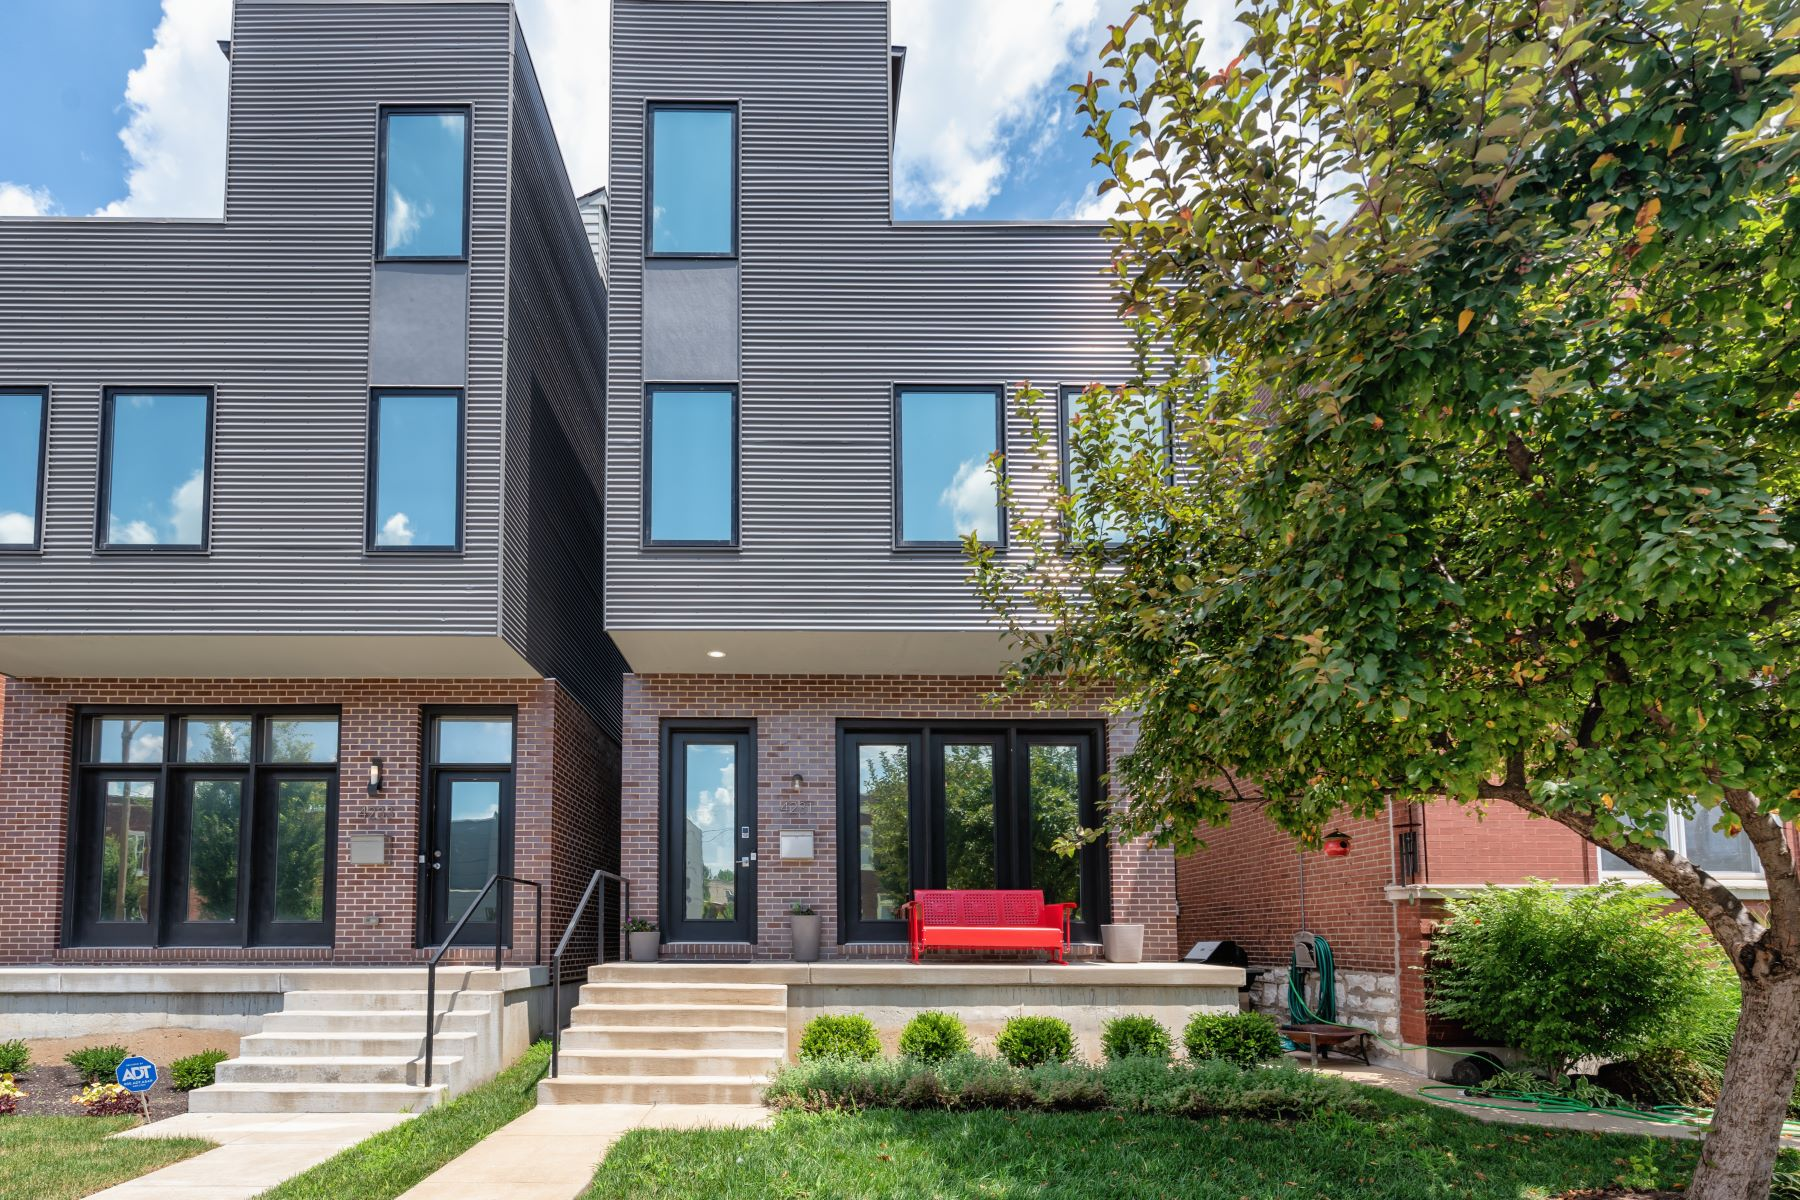 Single Family Homes for Sale at Contemporary Living in The Grove 4231 Gibson Avenue St. Louis, Missouri 63110 United States